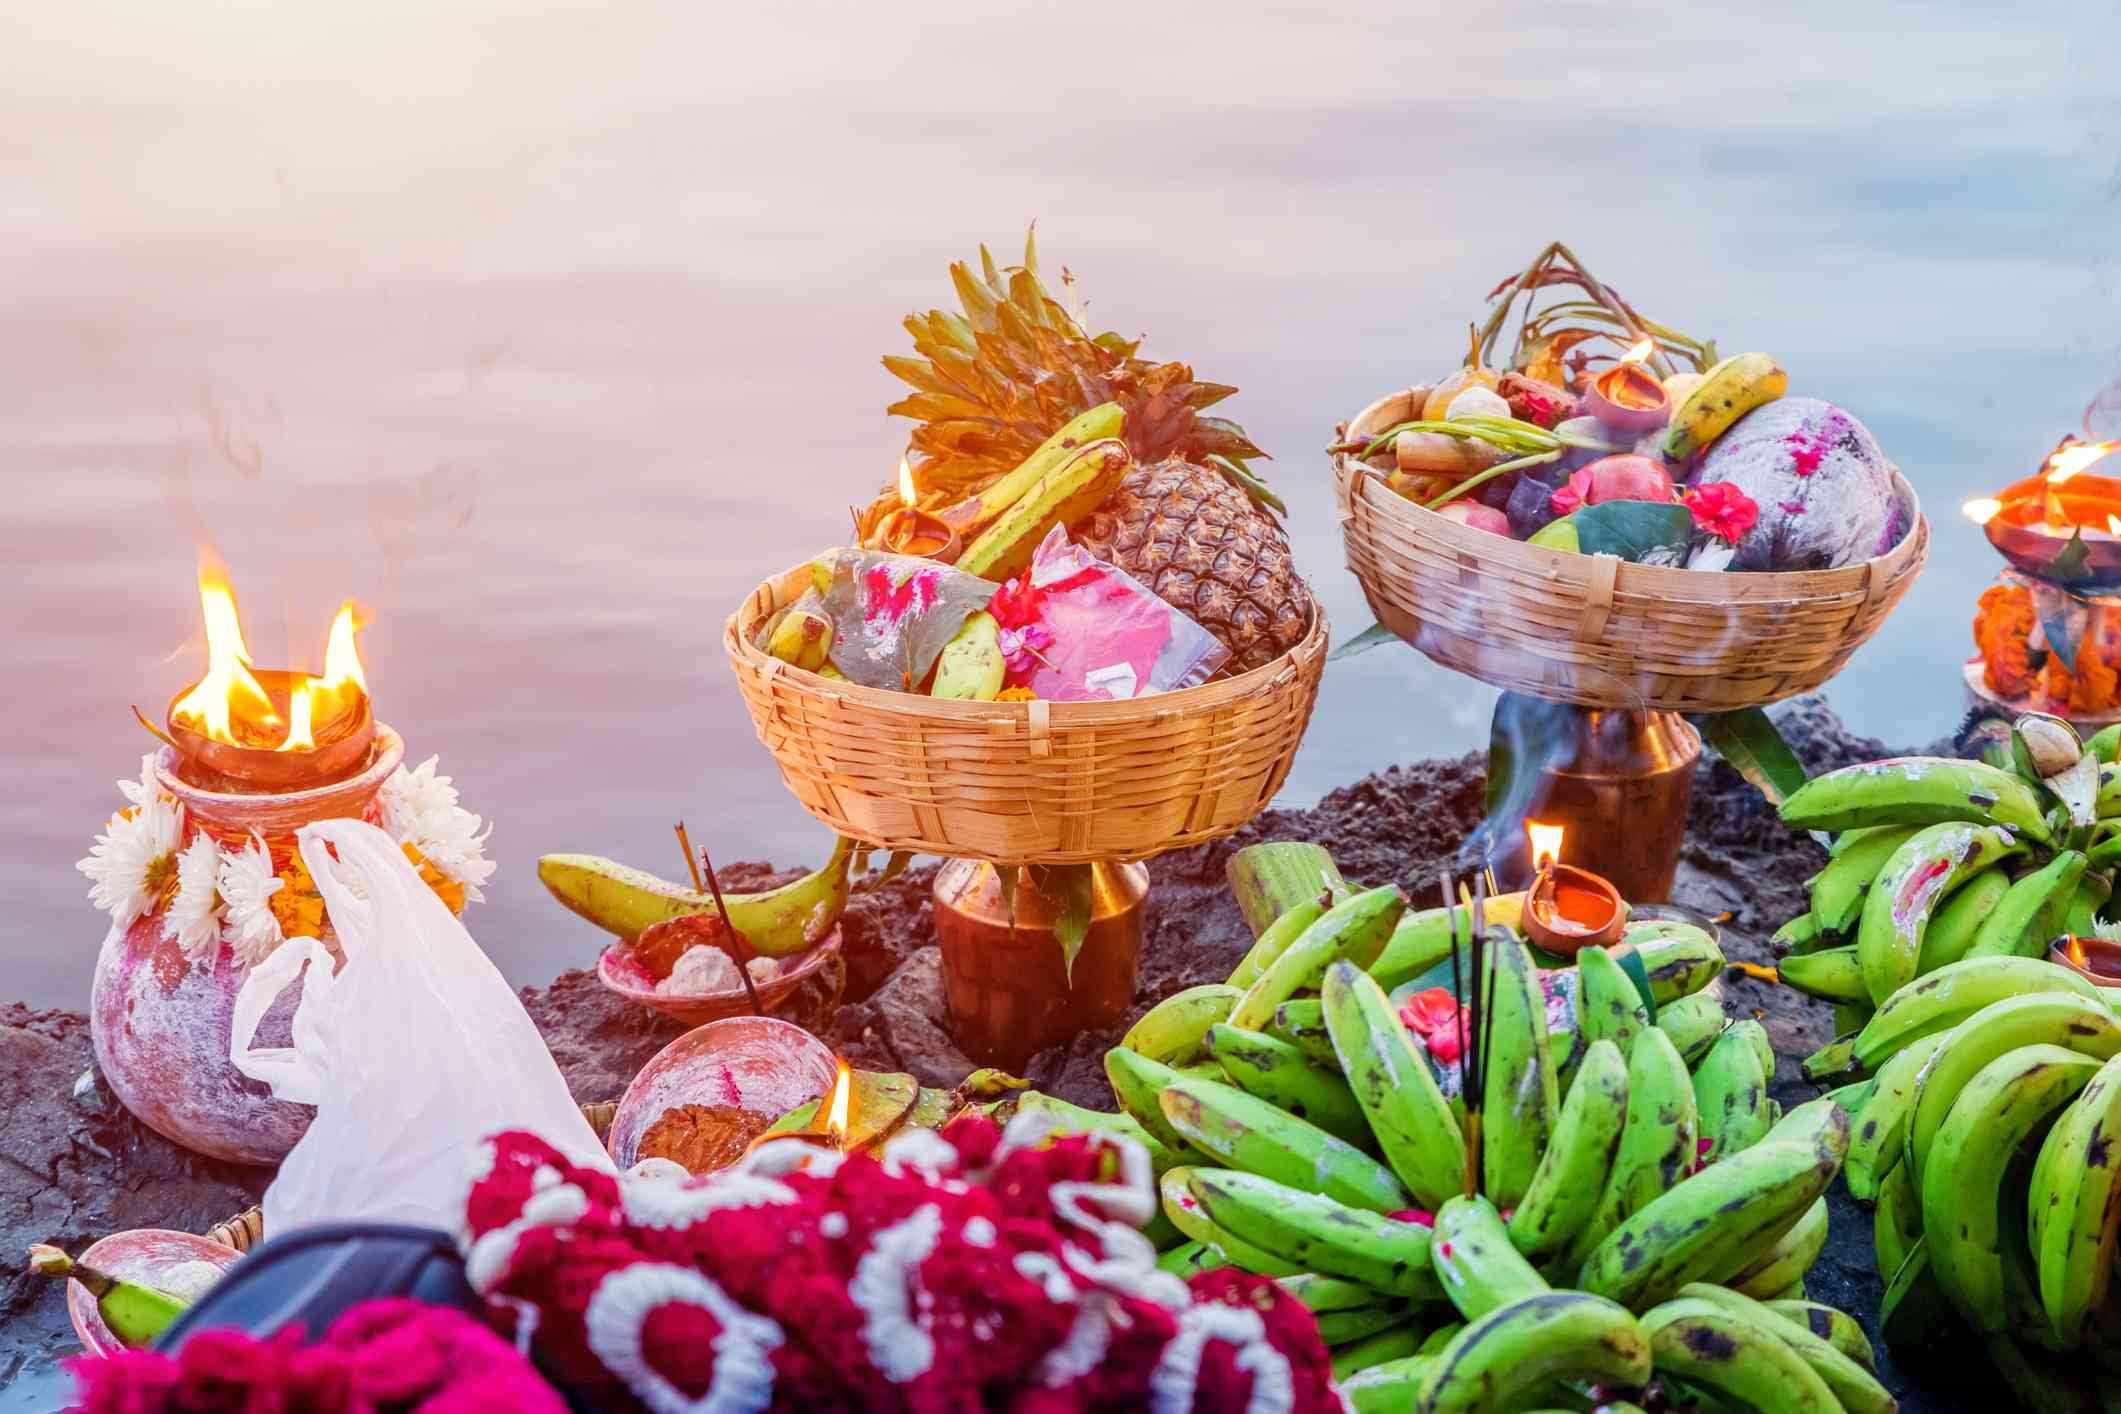 bunches of green bananas, baskets of fruit and candles sitting on rocks beside a river